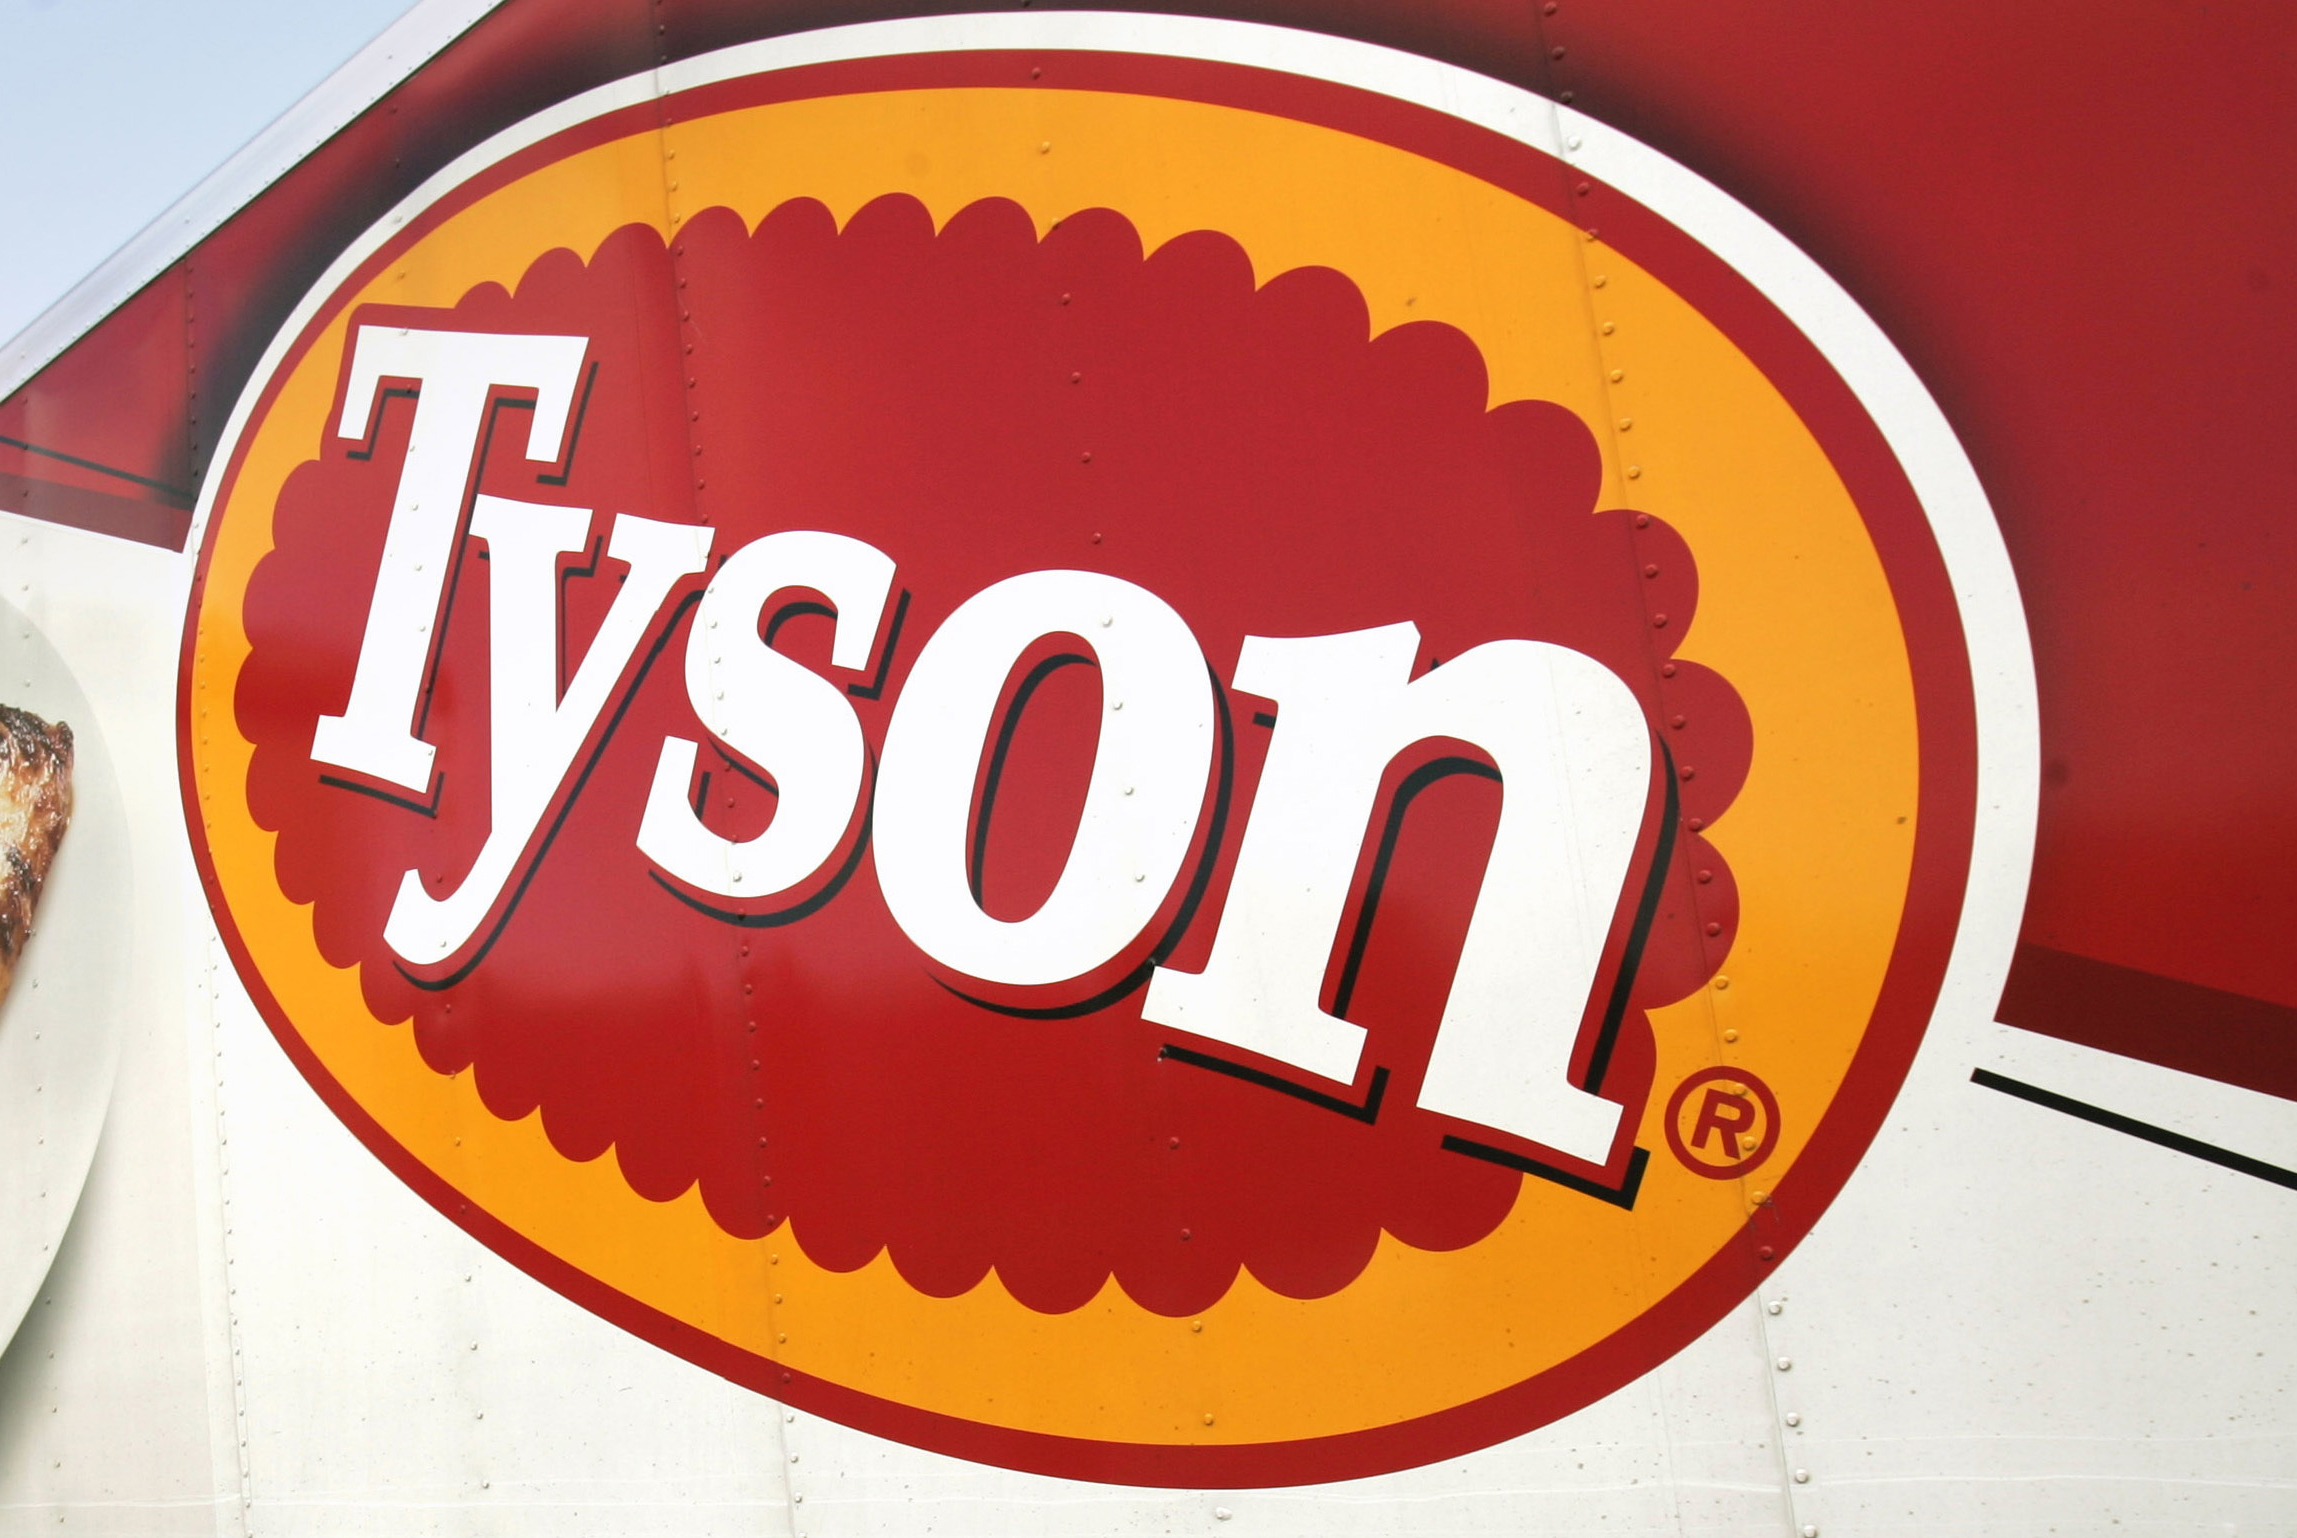 FILE - In this Oct. 28, 2009, file photo, a Tyson Foods, Inc., truck is parked at a food warehouse in Little Rock, Ark.  Tyson Foods is recalling more than 36,000 pounds (16,329 kilograms) of chicken nuggets because they may be contaminated with rubber.  The U.S. Agriculture Department says there were consumer complaints about extraneous material in 5-pound (2 kilogram) packages of Tyson White Meat Panko Chicken Nuggets. There are no confirmed reports of adverse reactions.  (AP Photo/Danny Johnston, File)